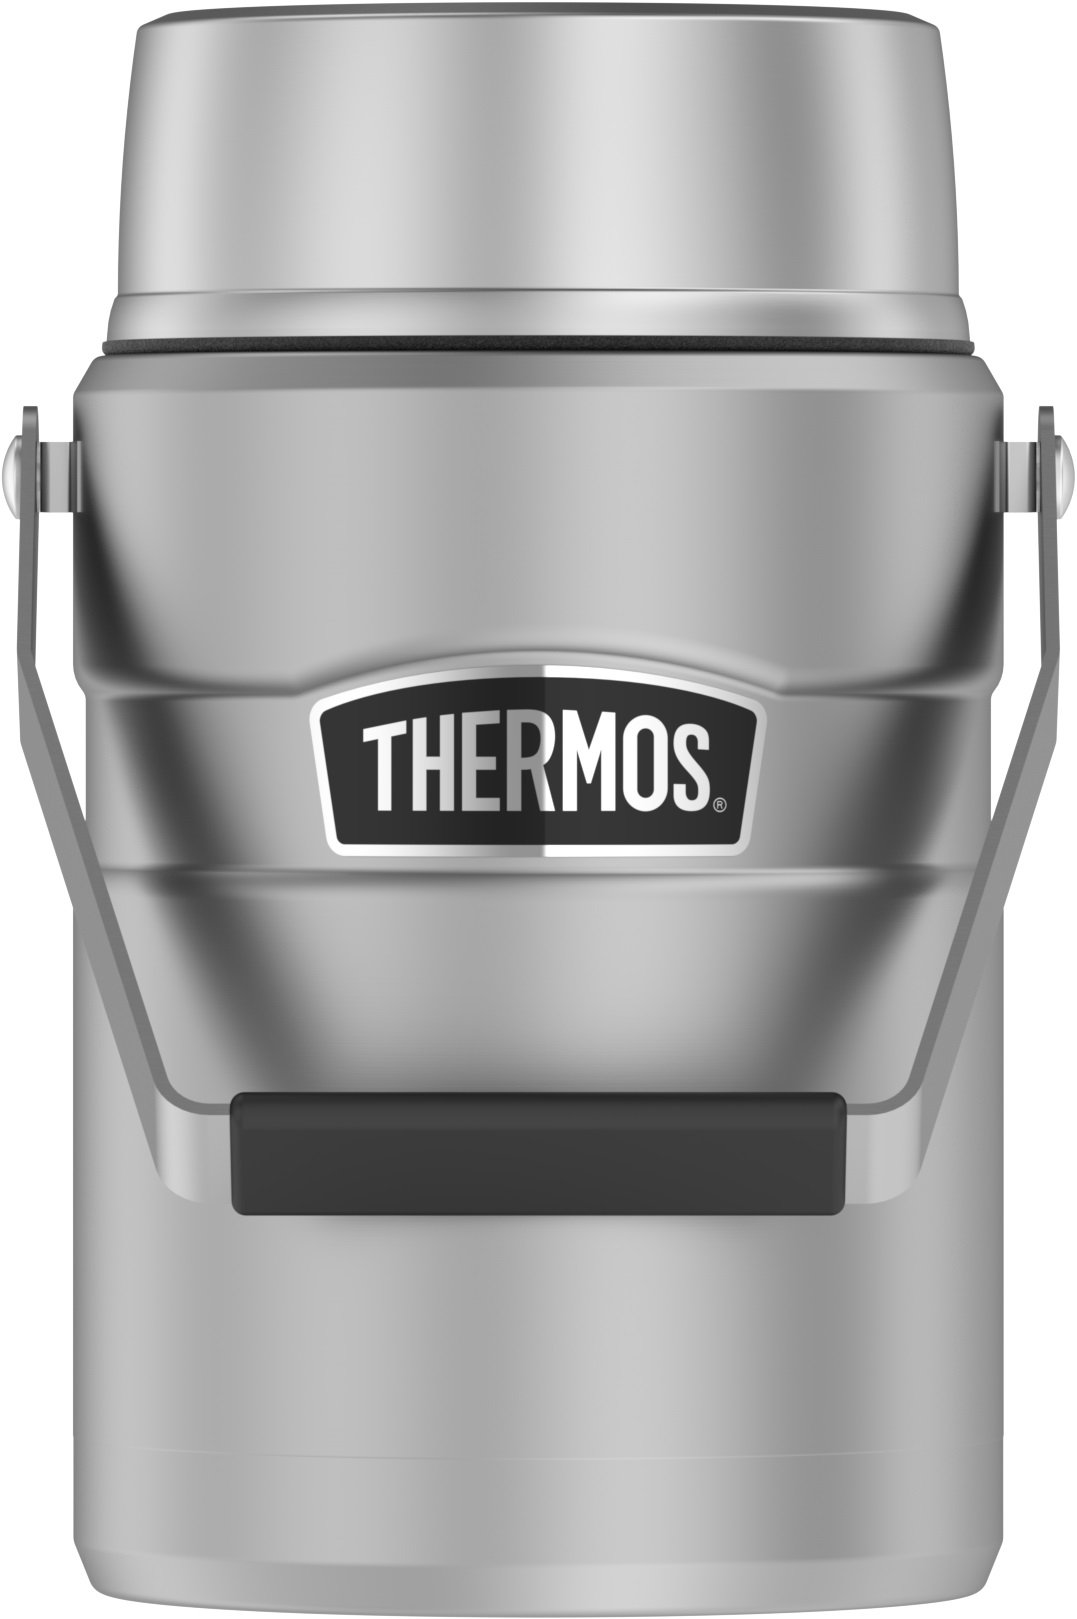 Thermos Stainless King 47 Ounce Vacuum Insulated Food Jar with 2 Inserts, Stainless Steel by Thermos